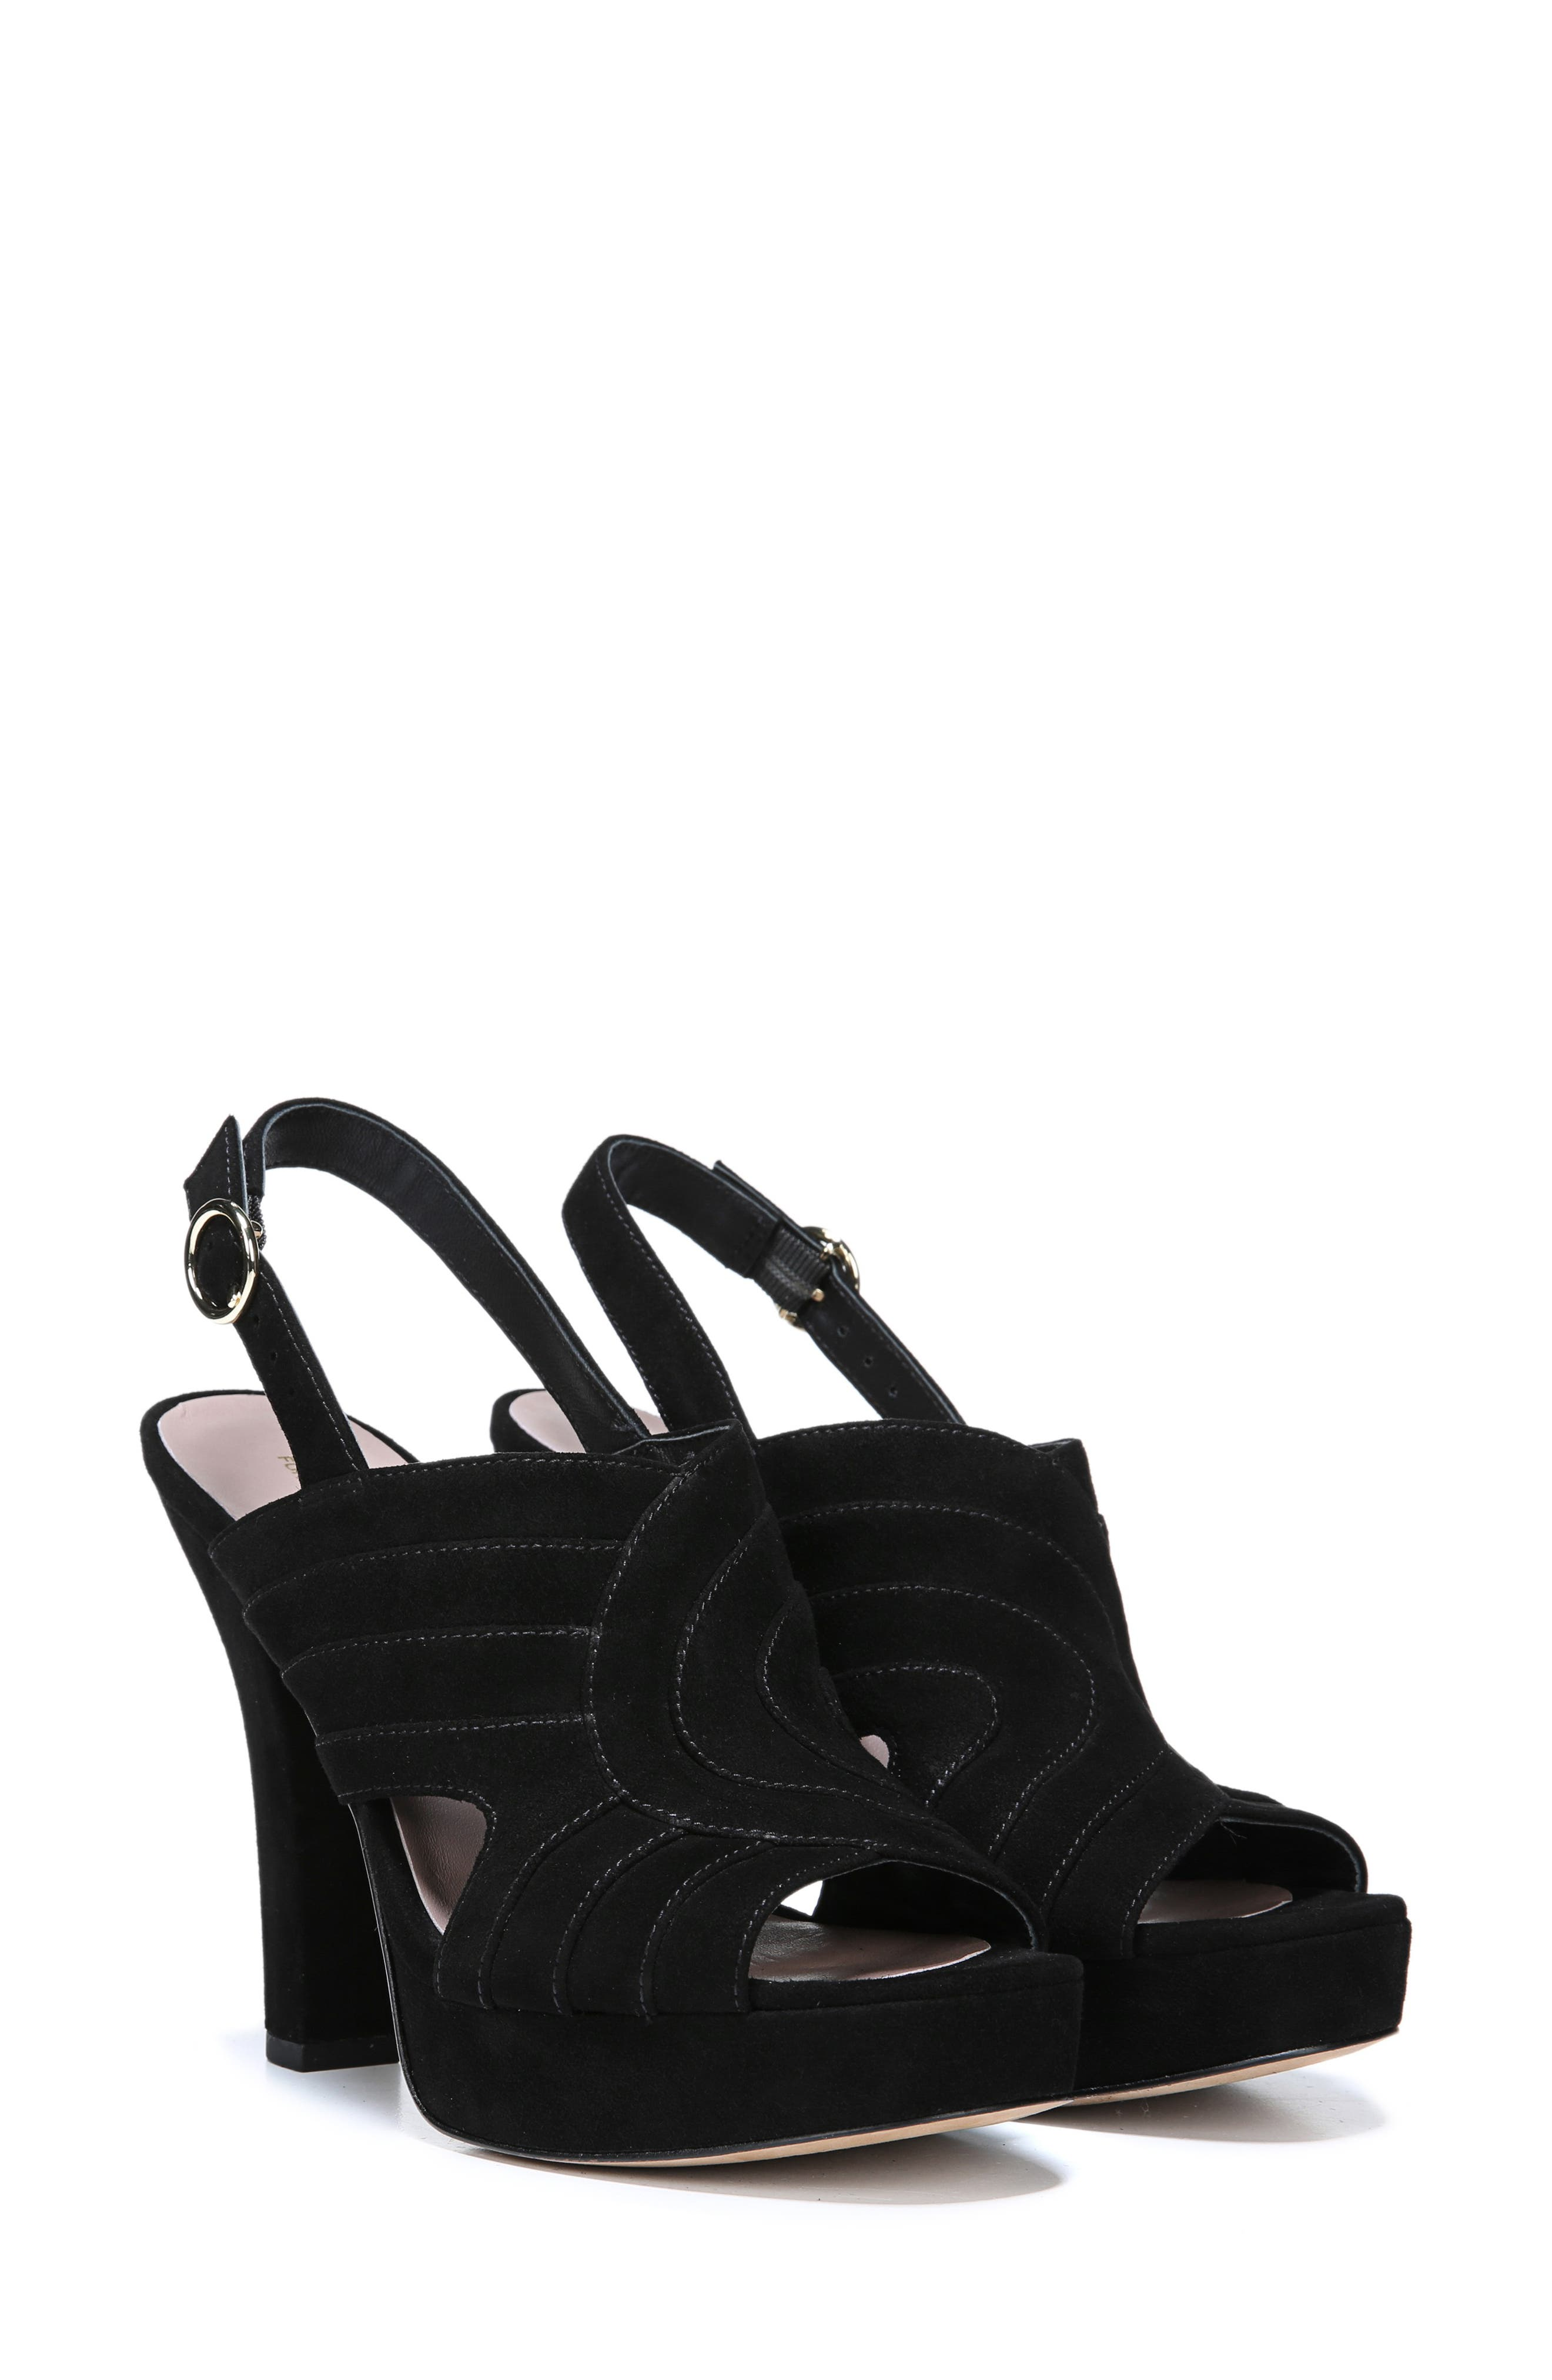 Tabby Platform Sandal,                             Alternate thumbnail 7, color,                             BLACK